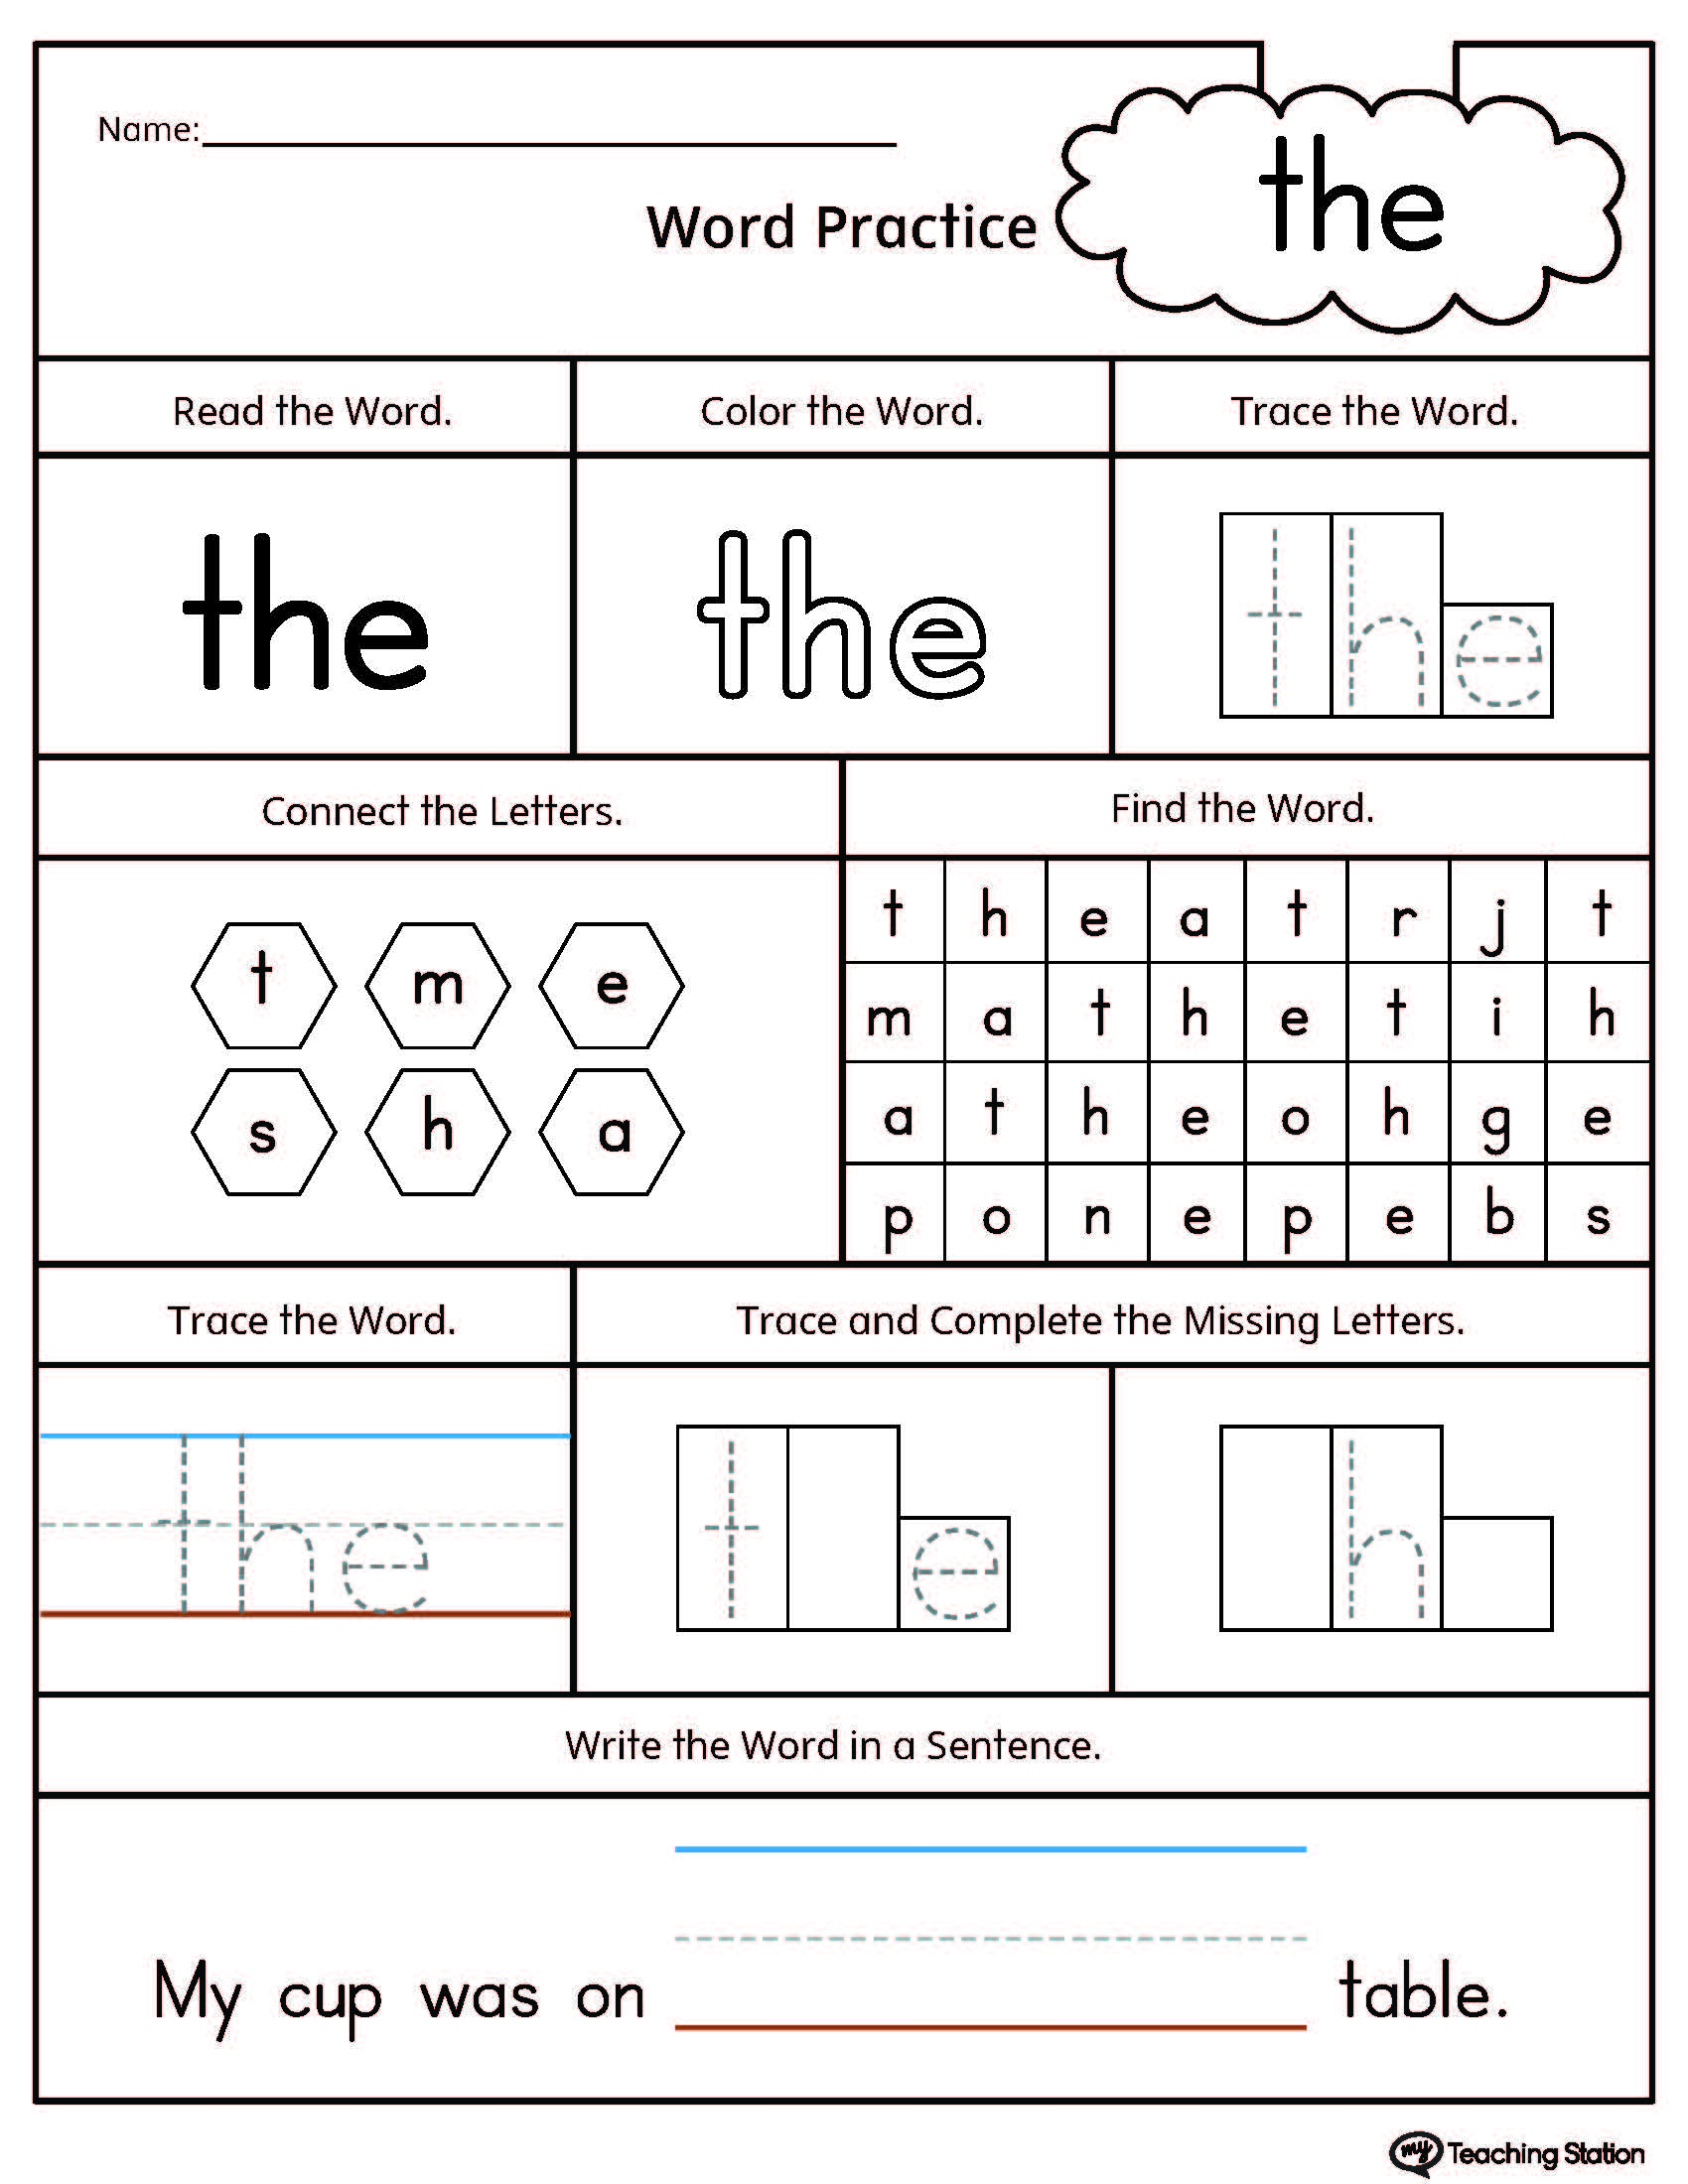 image regarding Printable Sight Word Worksheets titled Sight Term the Printable Worksheet